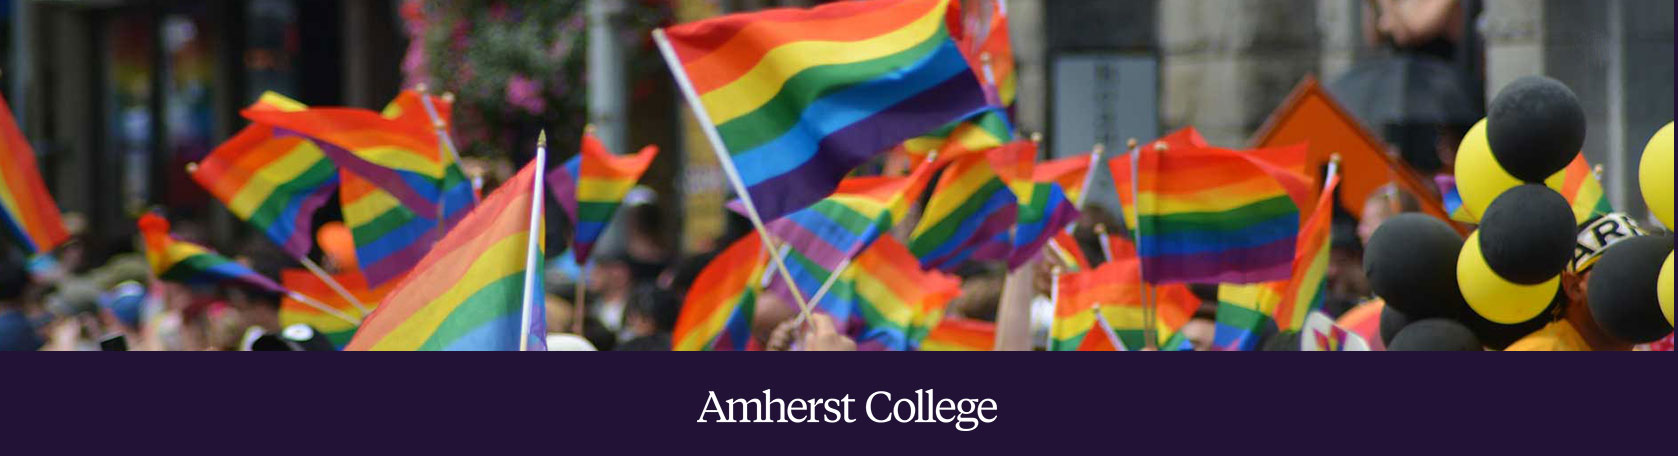 In 1982 a group of Amherst alumni formed the Amherst Gay and Lesbian Alumni Group known as GALA